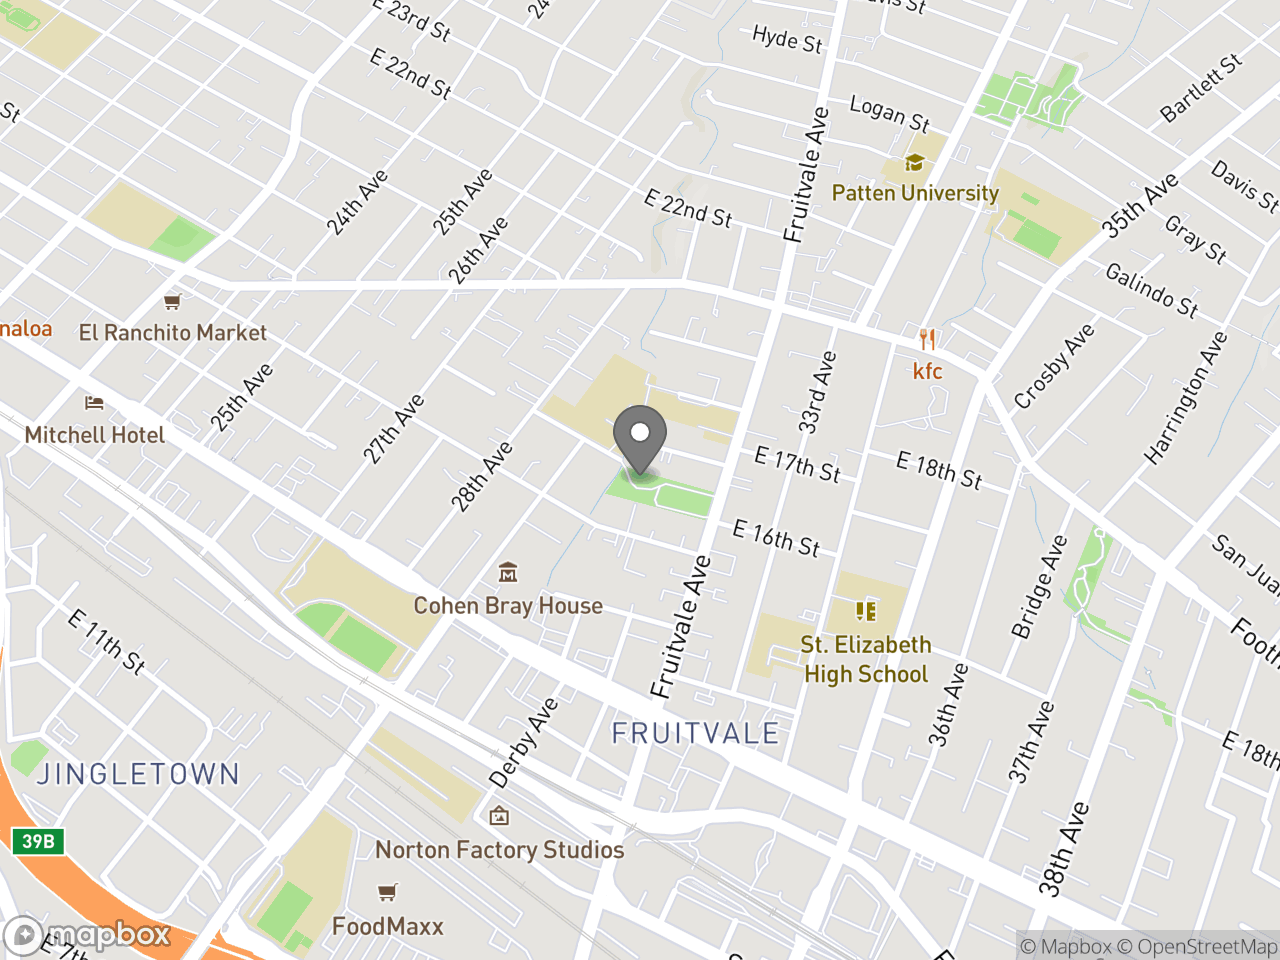 Map image for Carmen Flores Recreation Center, located at 1637 Fruitvale Ave in Oakland, CA 94601